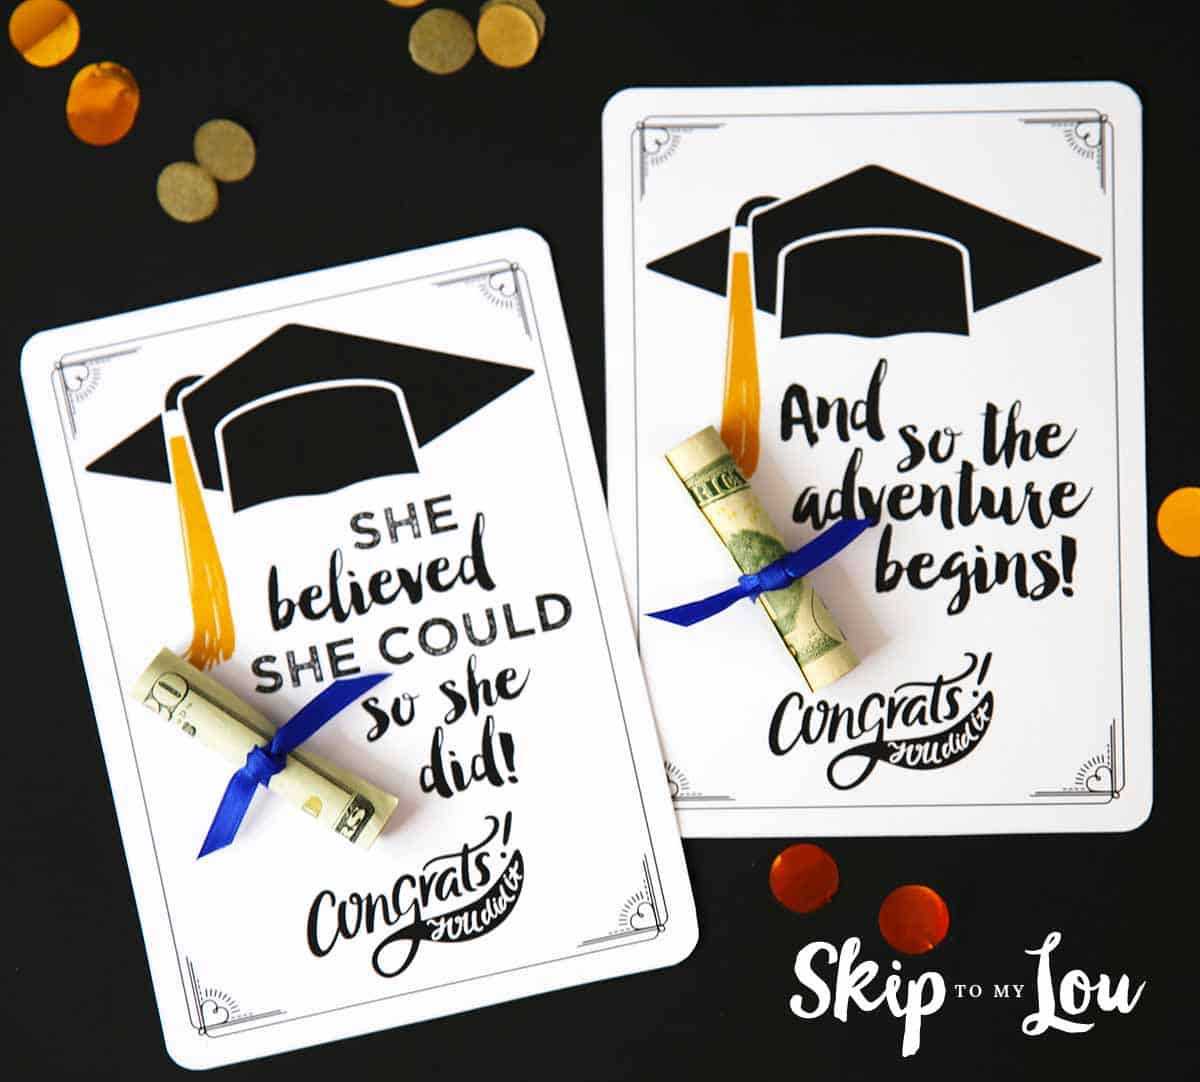 Free Graduation Cards With Positive Quotes And Cash